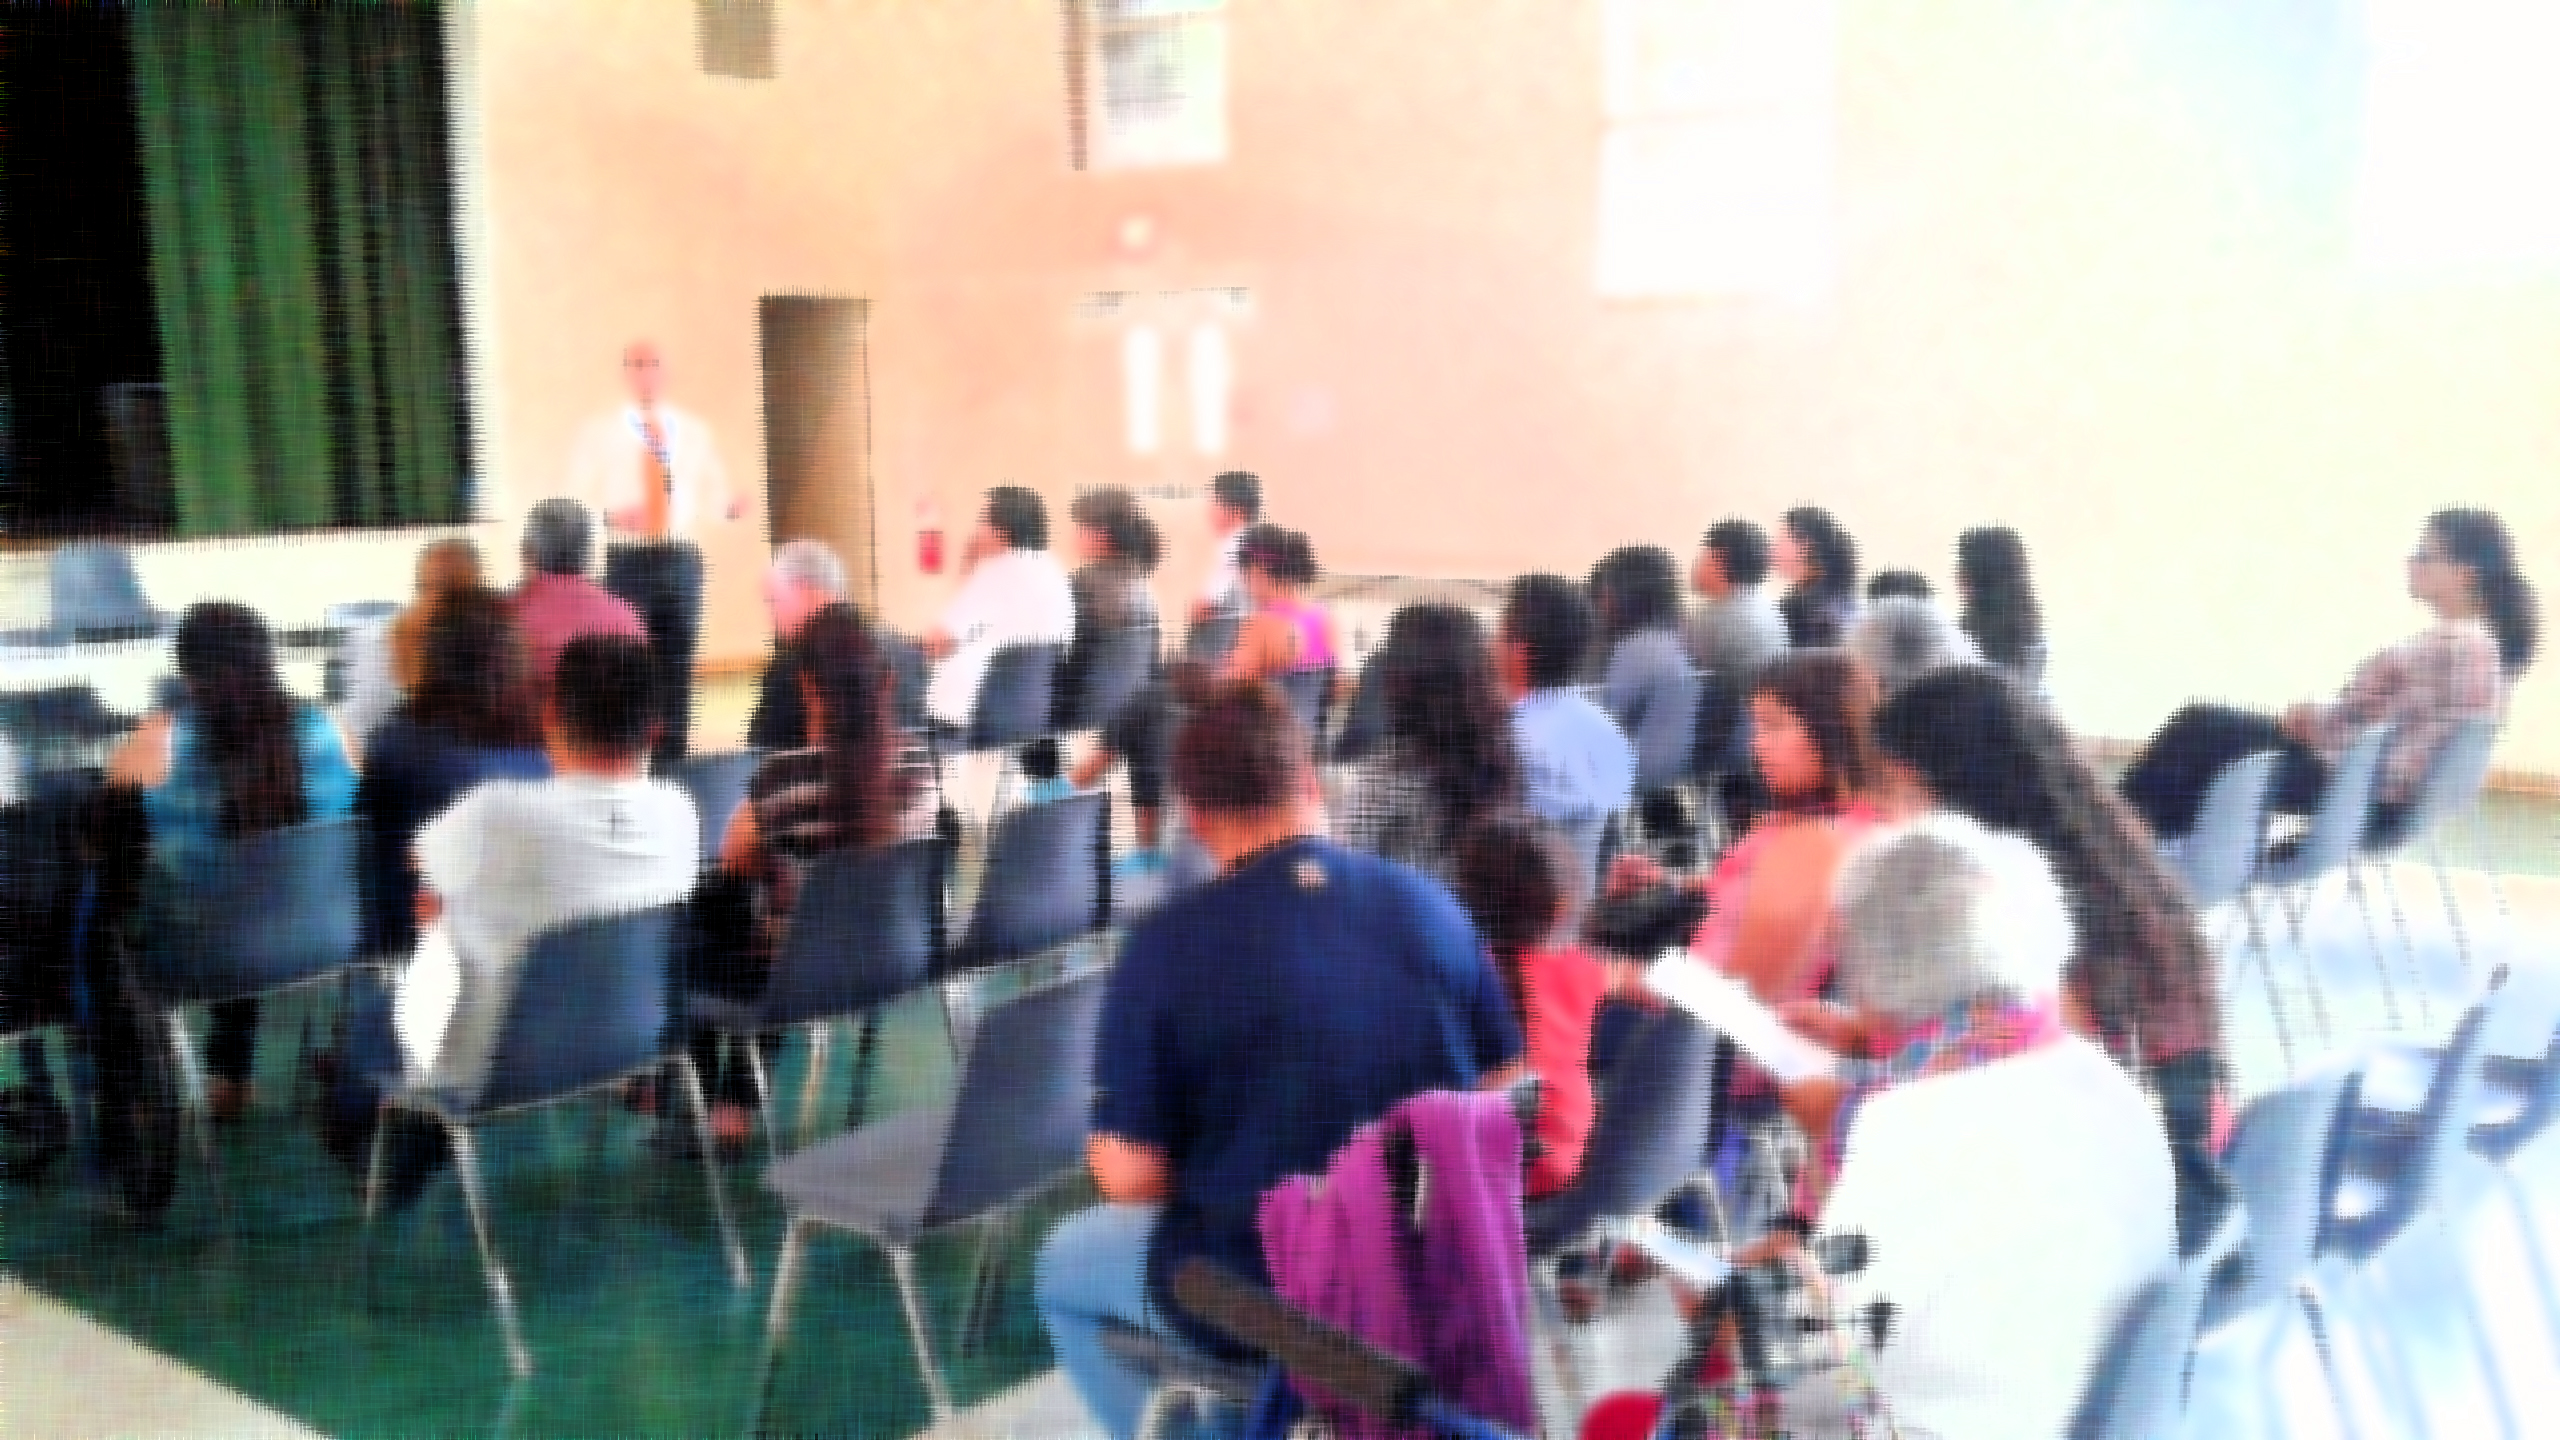 1610_-_GCLCG_-_DACA_Workshop_at_All_Saints_Catholic-_Blurred.jpg